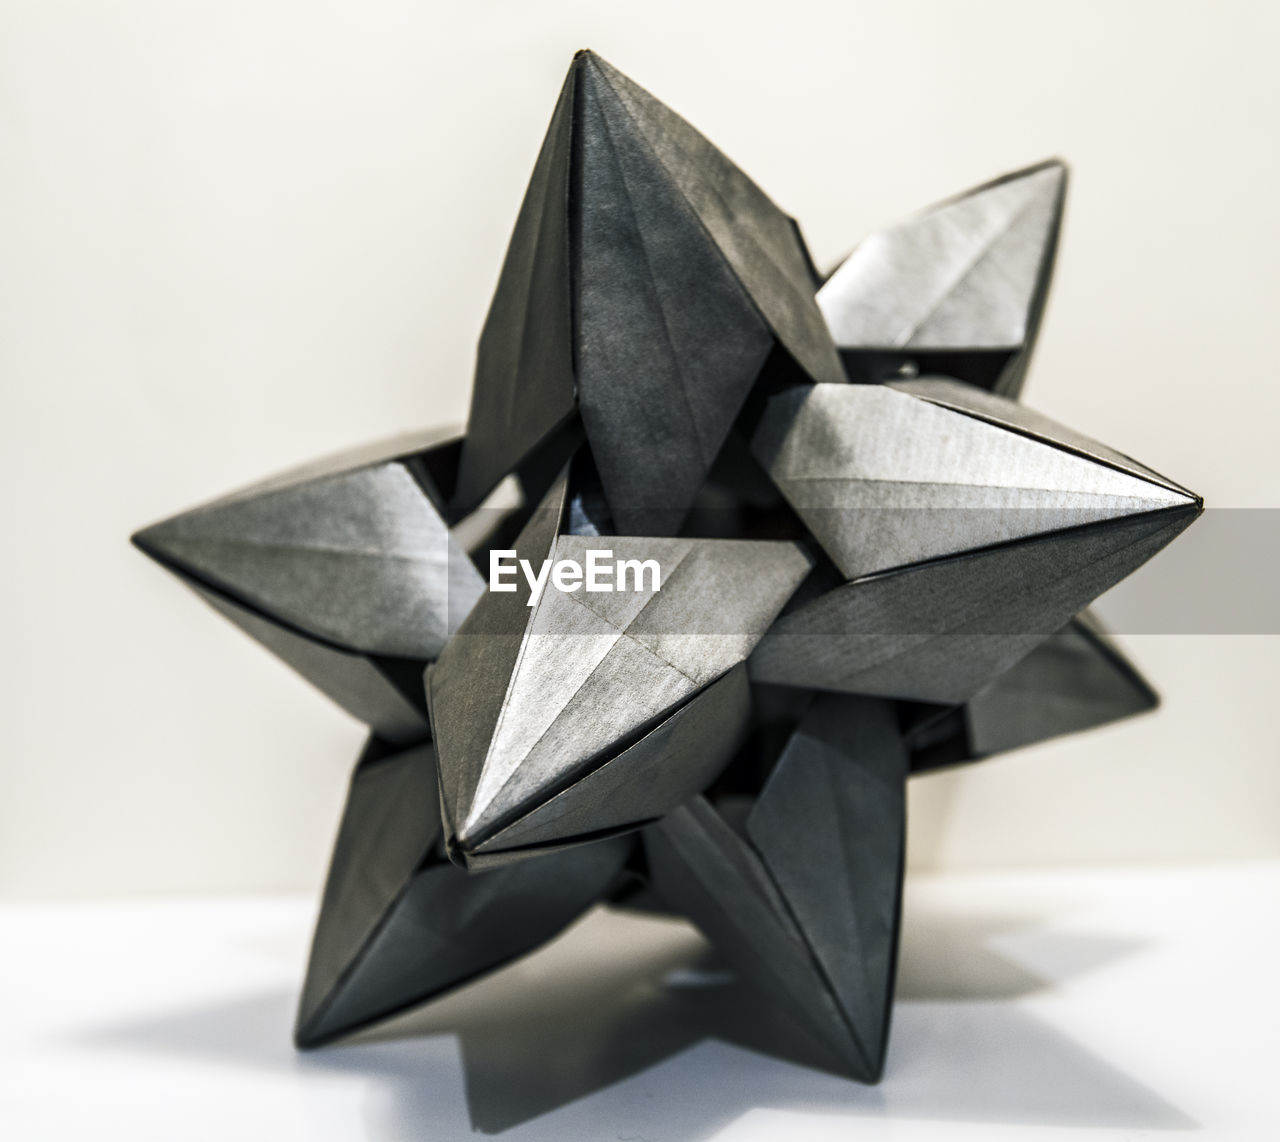 close-up, still life, origami, no people, indoors, creativity, art and craft, focus on foreground, shape, studio shot, paper, craft, white background, representation, design, star shape, toy, table, large group of objects, metal, silver colored